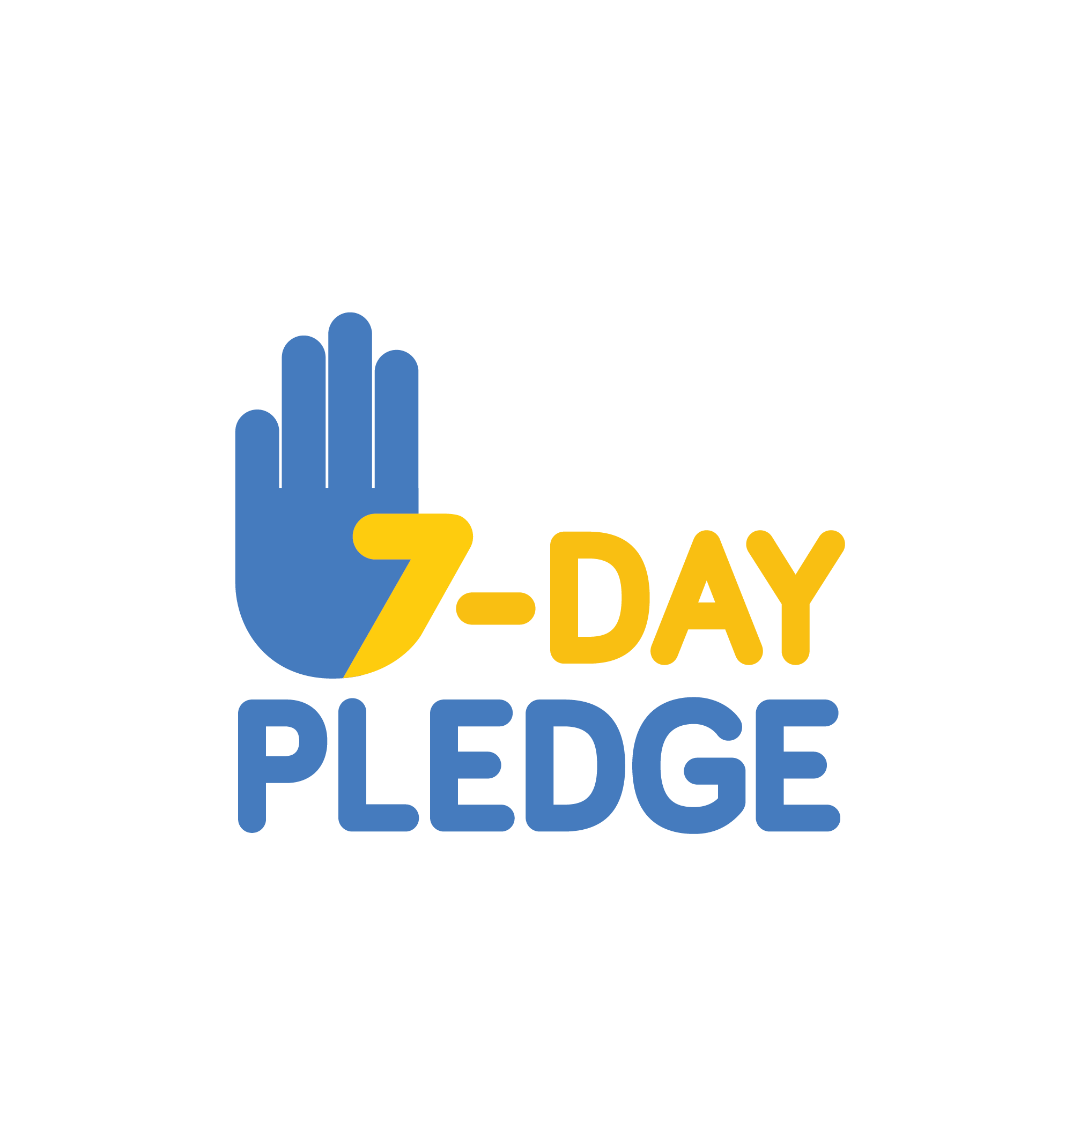 Dr. Dawn Wiest, 7-day pledge after hospital admission